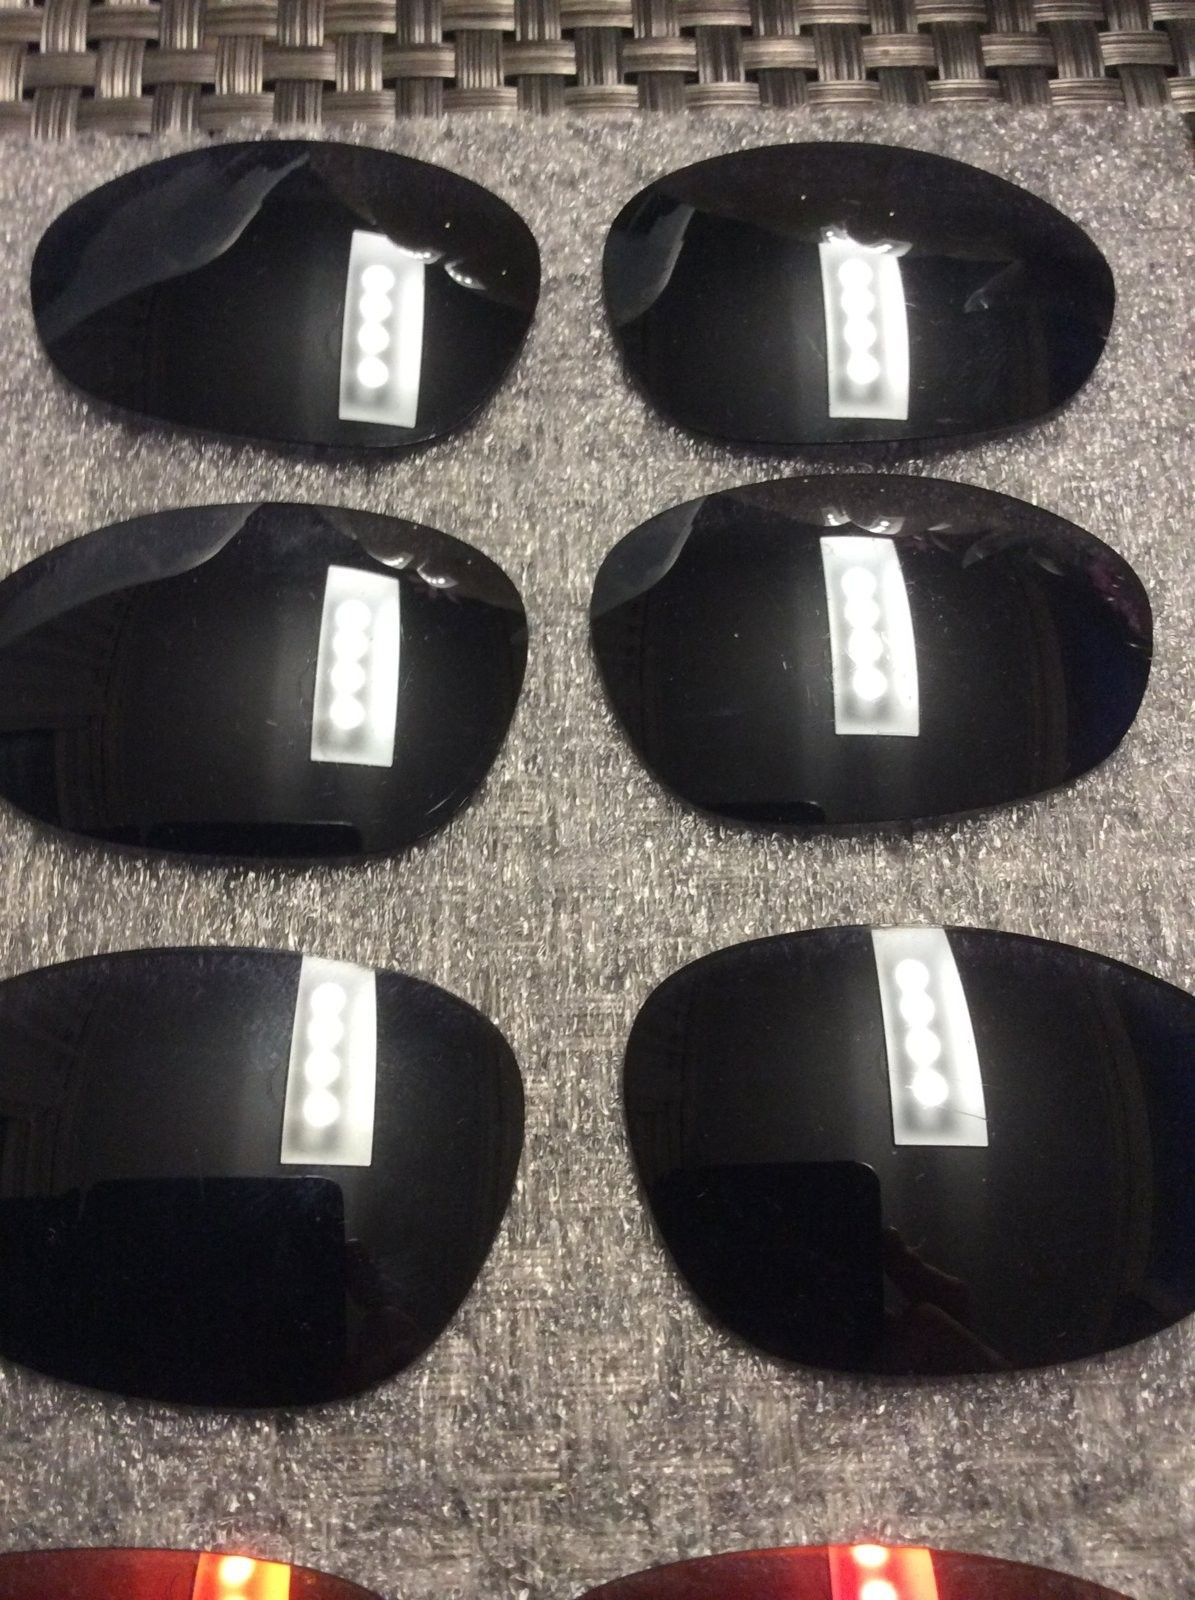 Lenses  10 pairs - Juliets Gone  ,  4 pairs XX and 1 R1 remaining - IMG_0185.JPG